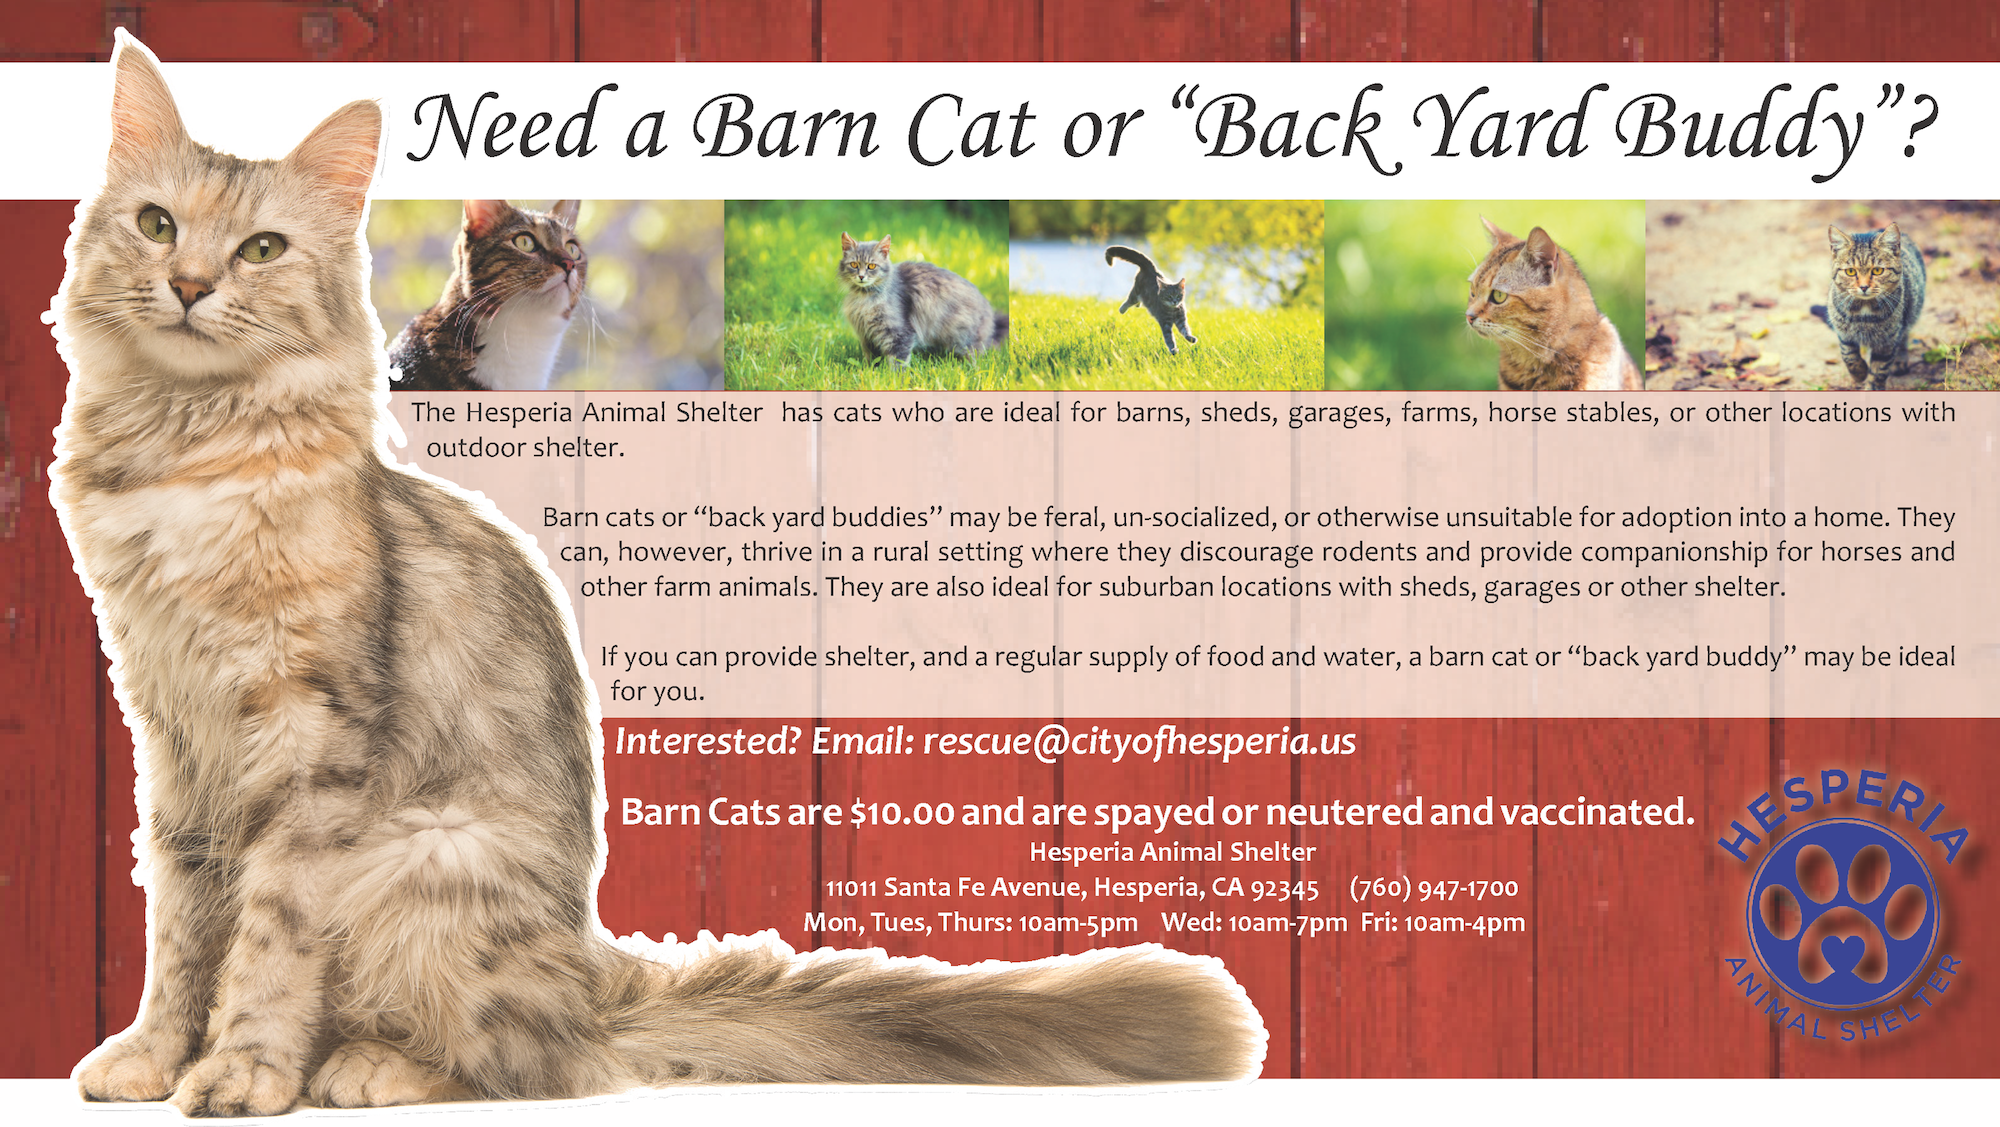 adopt a barn cat or back yard buddy from hesperia animal shelter